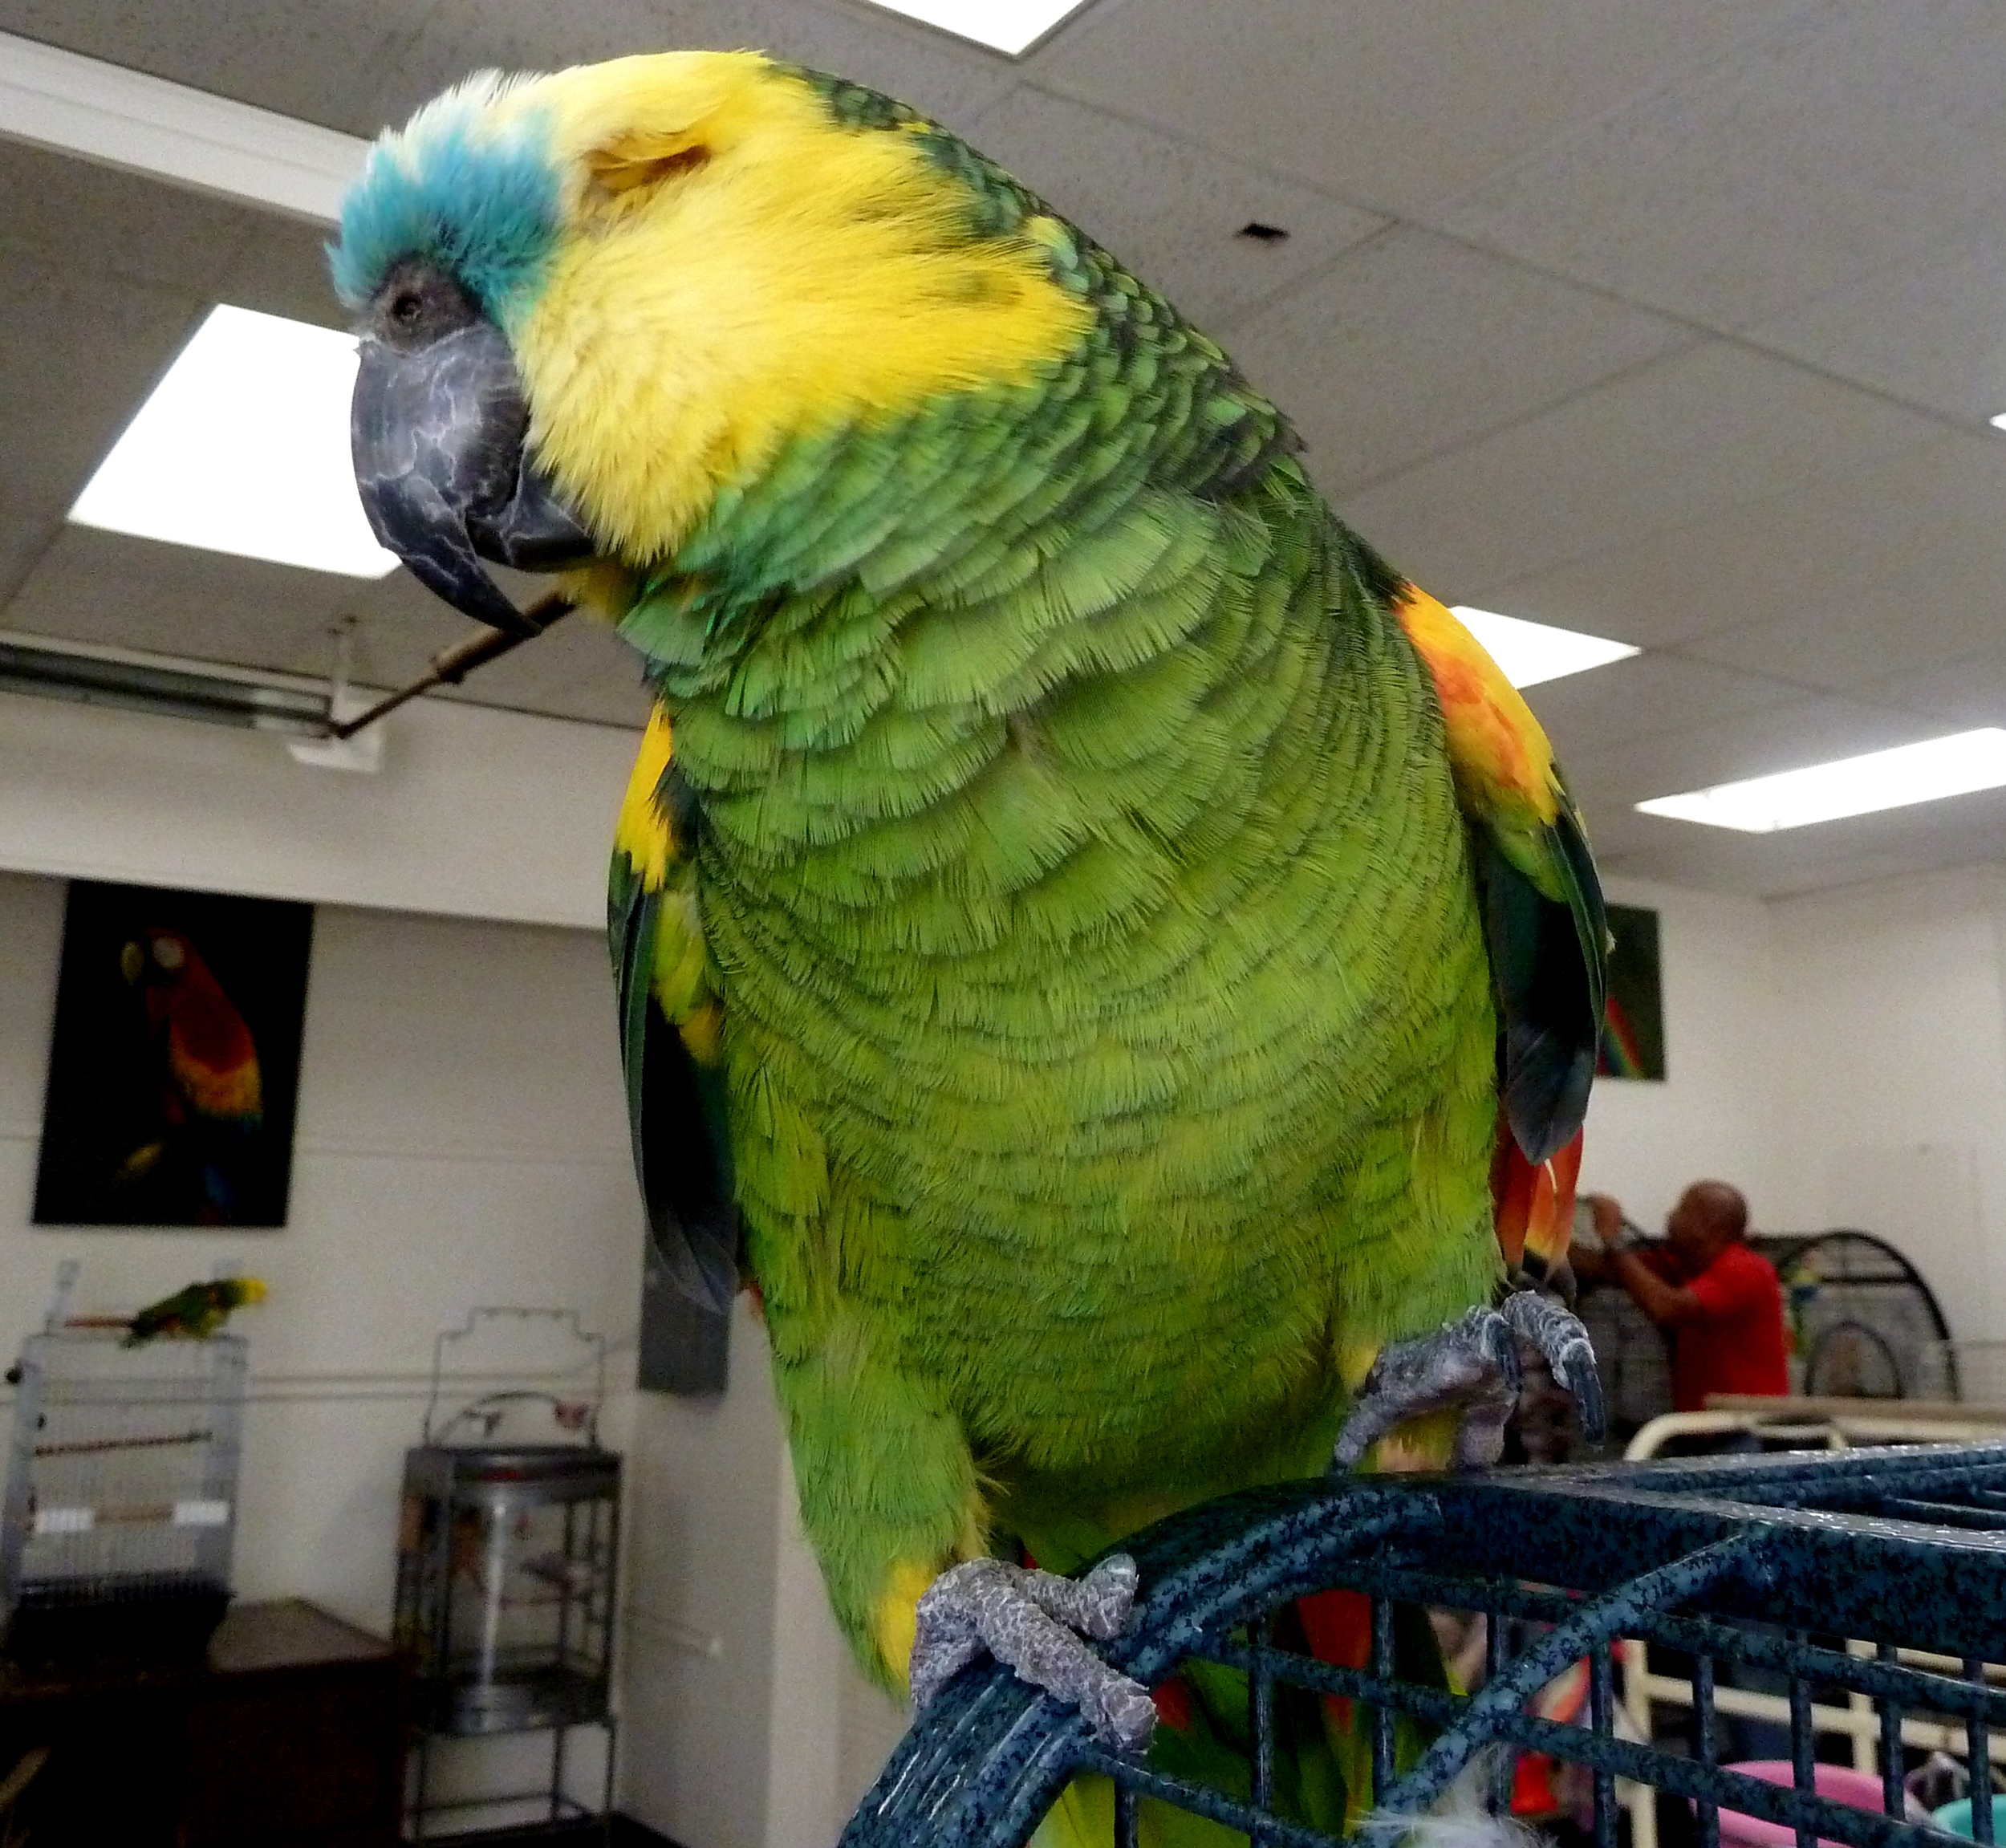 PJ the Amazon parrot lost his eye from infection and was surrendered the San Diego Bird Rescue (SDBR) when his owner died.